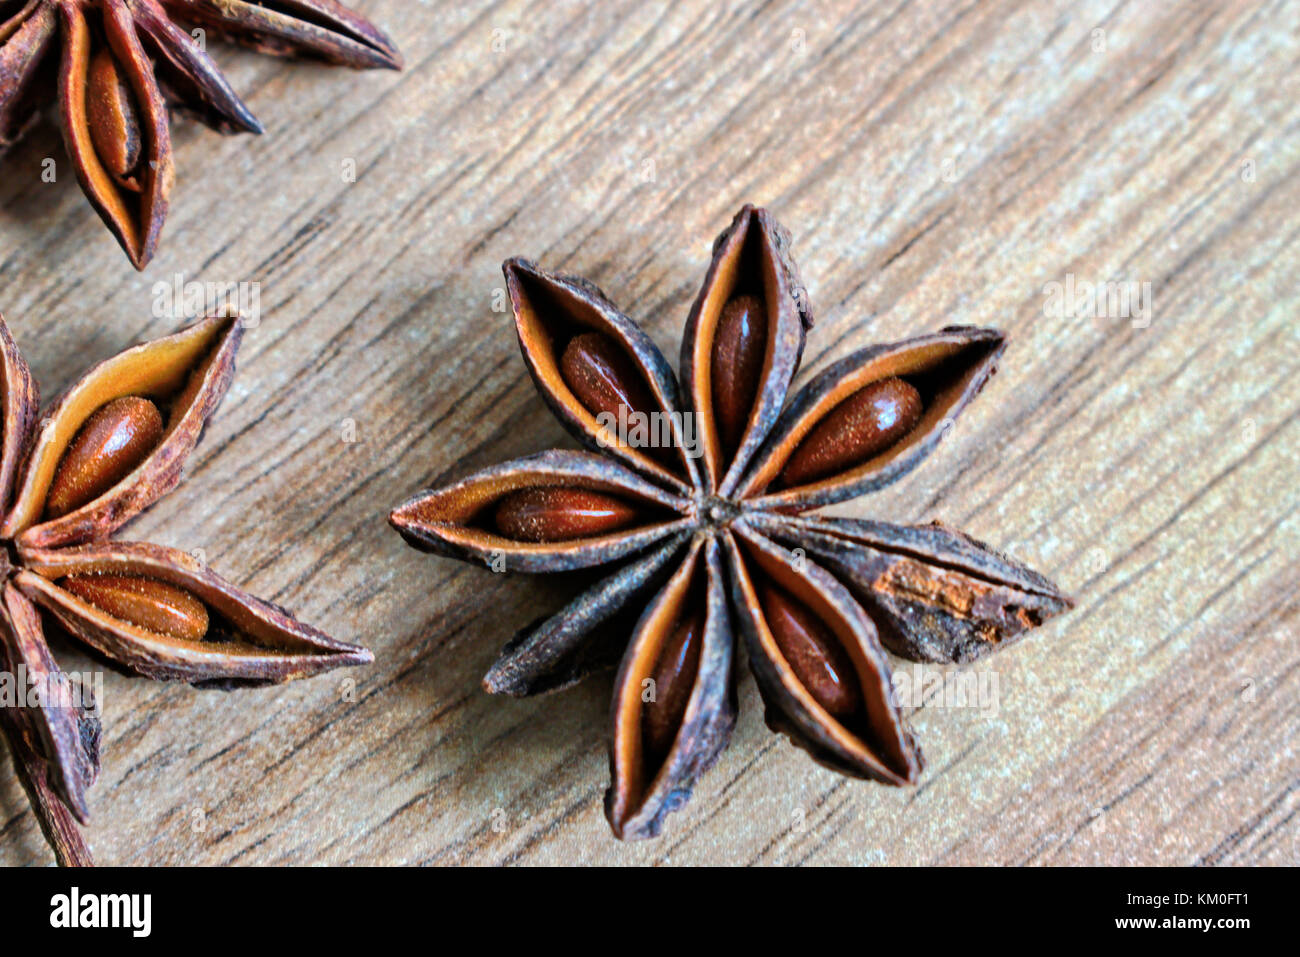 Closeup of star shaped anise on a wooden table - Stock Image